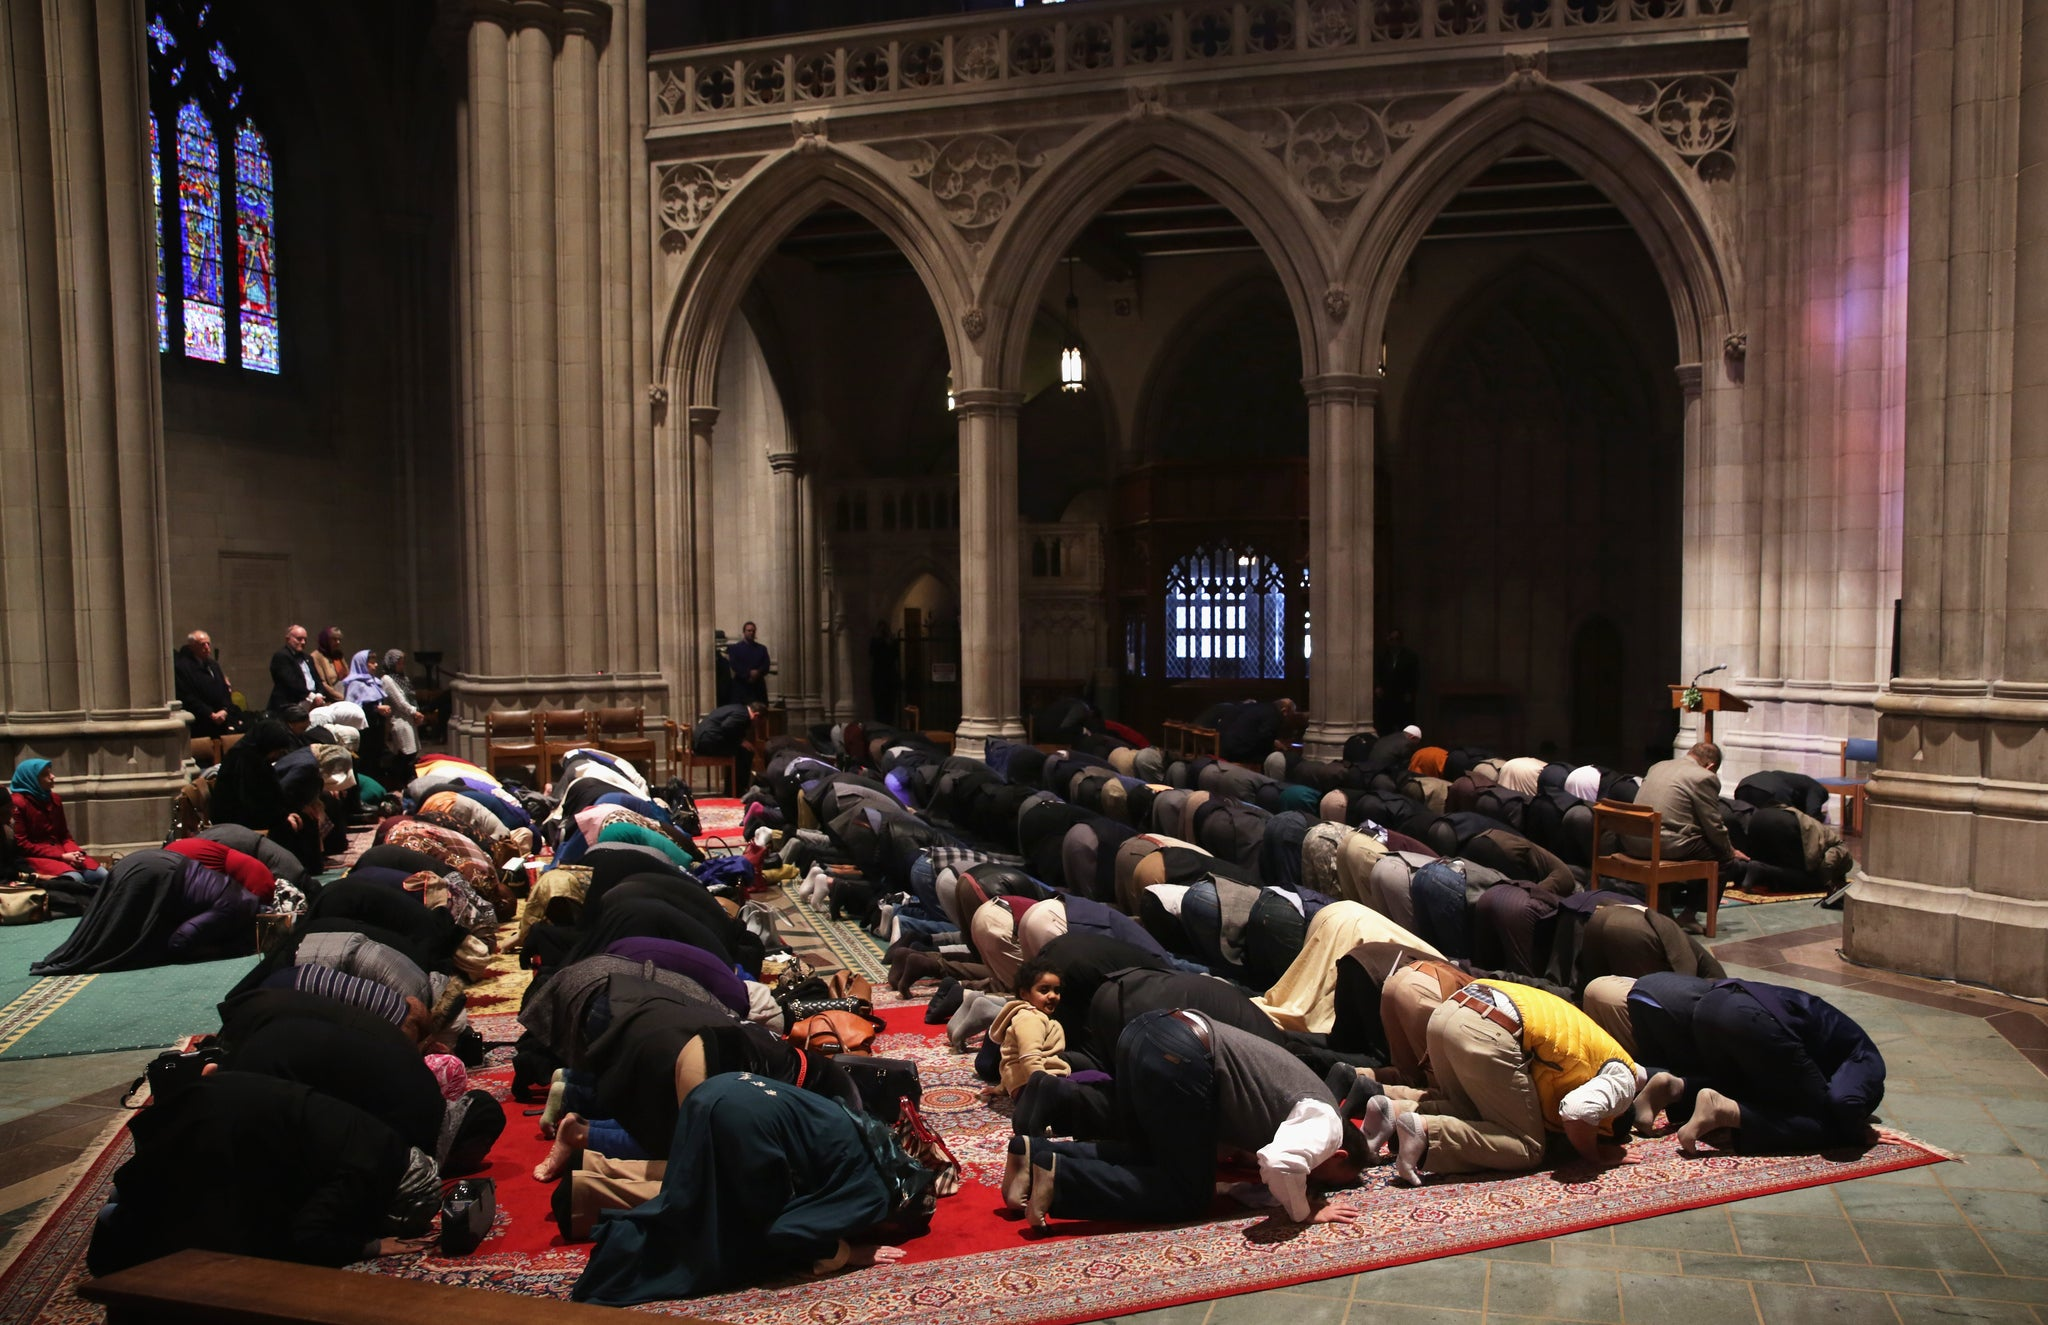 Hundreds of Muslims attend weekly prayers at iconic Christian cathedral